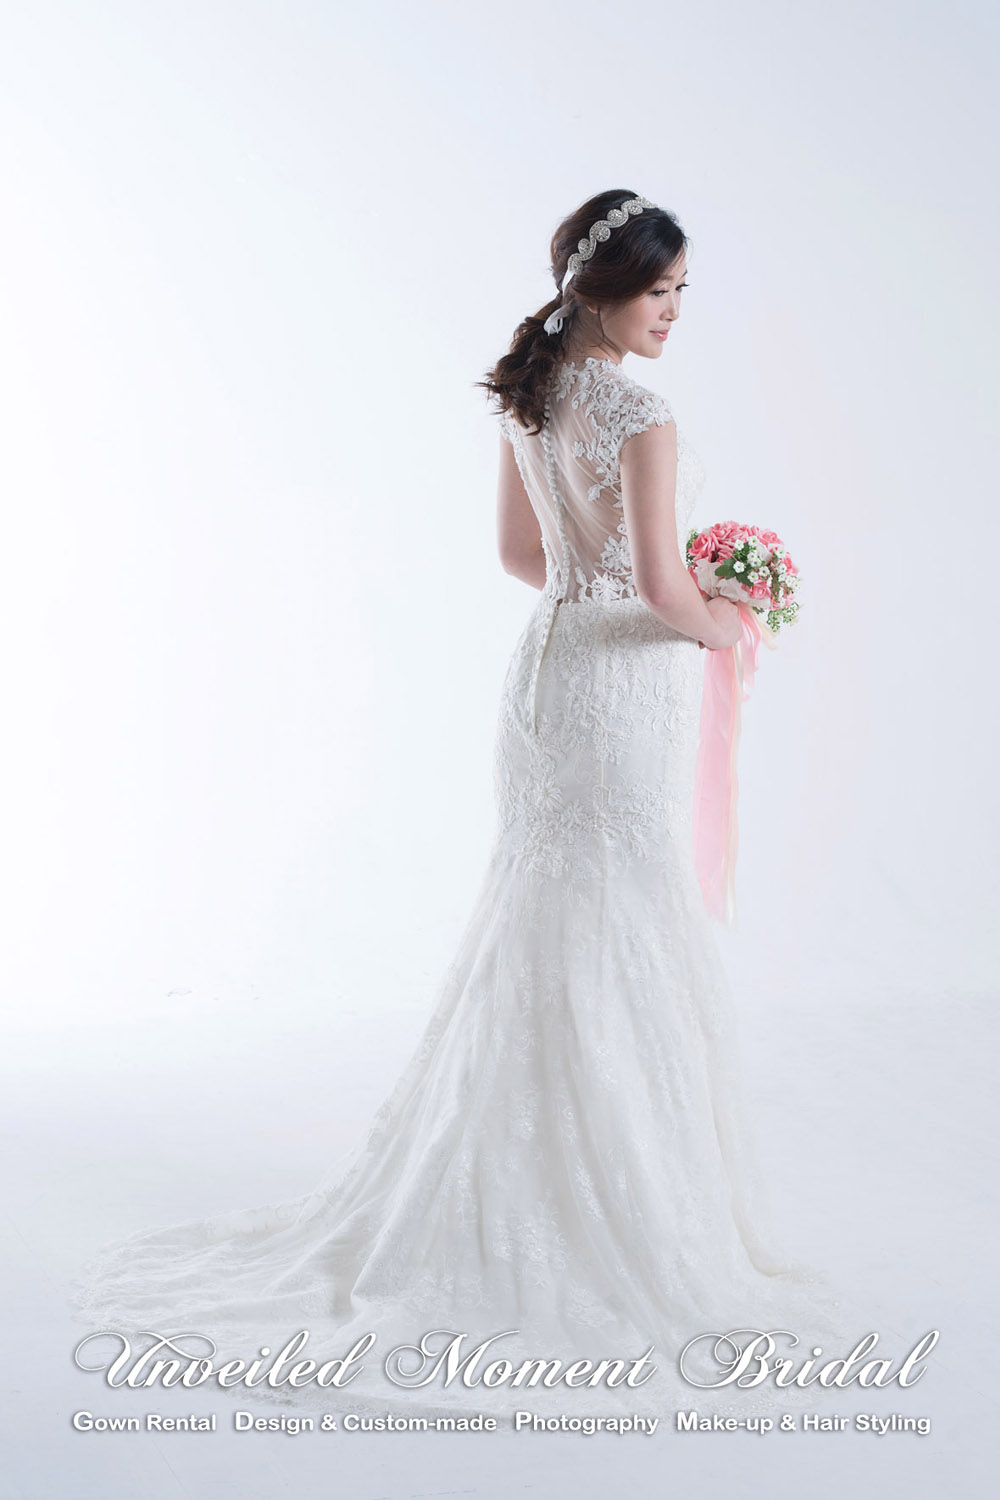 肩膊袖, 大V領口, 透視美背魚尾婚紗 Cap sleeves, deep-V neckline lace mermaid wedding dress with a see-through, shark buttons back and sweep train